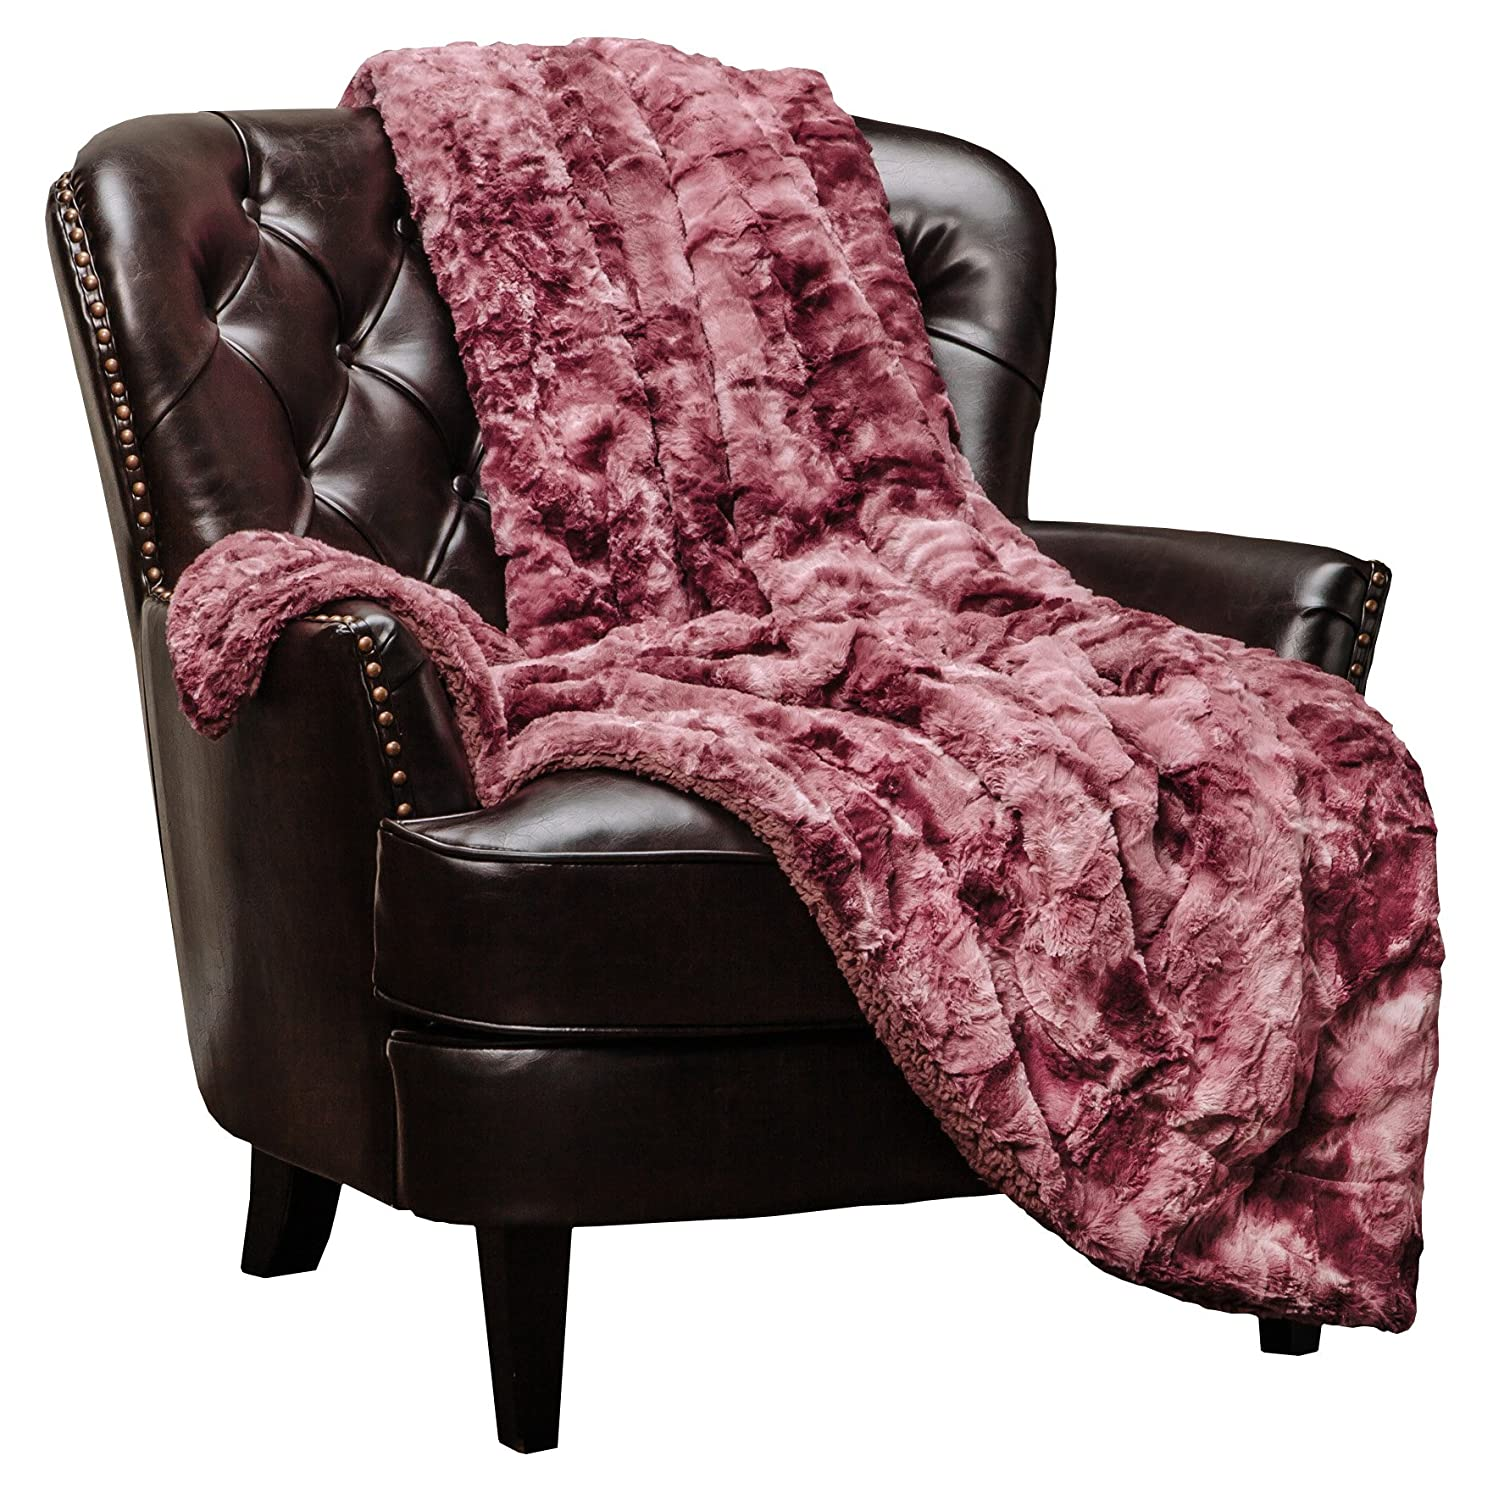 """Chanasya Faux Fur Throw Blanket   Super Soft Fuzzy Light Weight Luxurious Cozy Warm Fluffy Plush Hypoallergenic Blanket for Bed Couch Chair Fall Winter Spring Living Room (50"""" x 65"""") - Darkrose"""